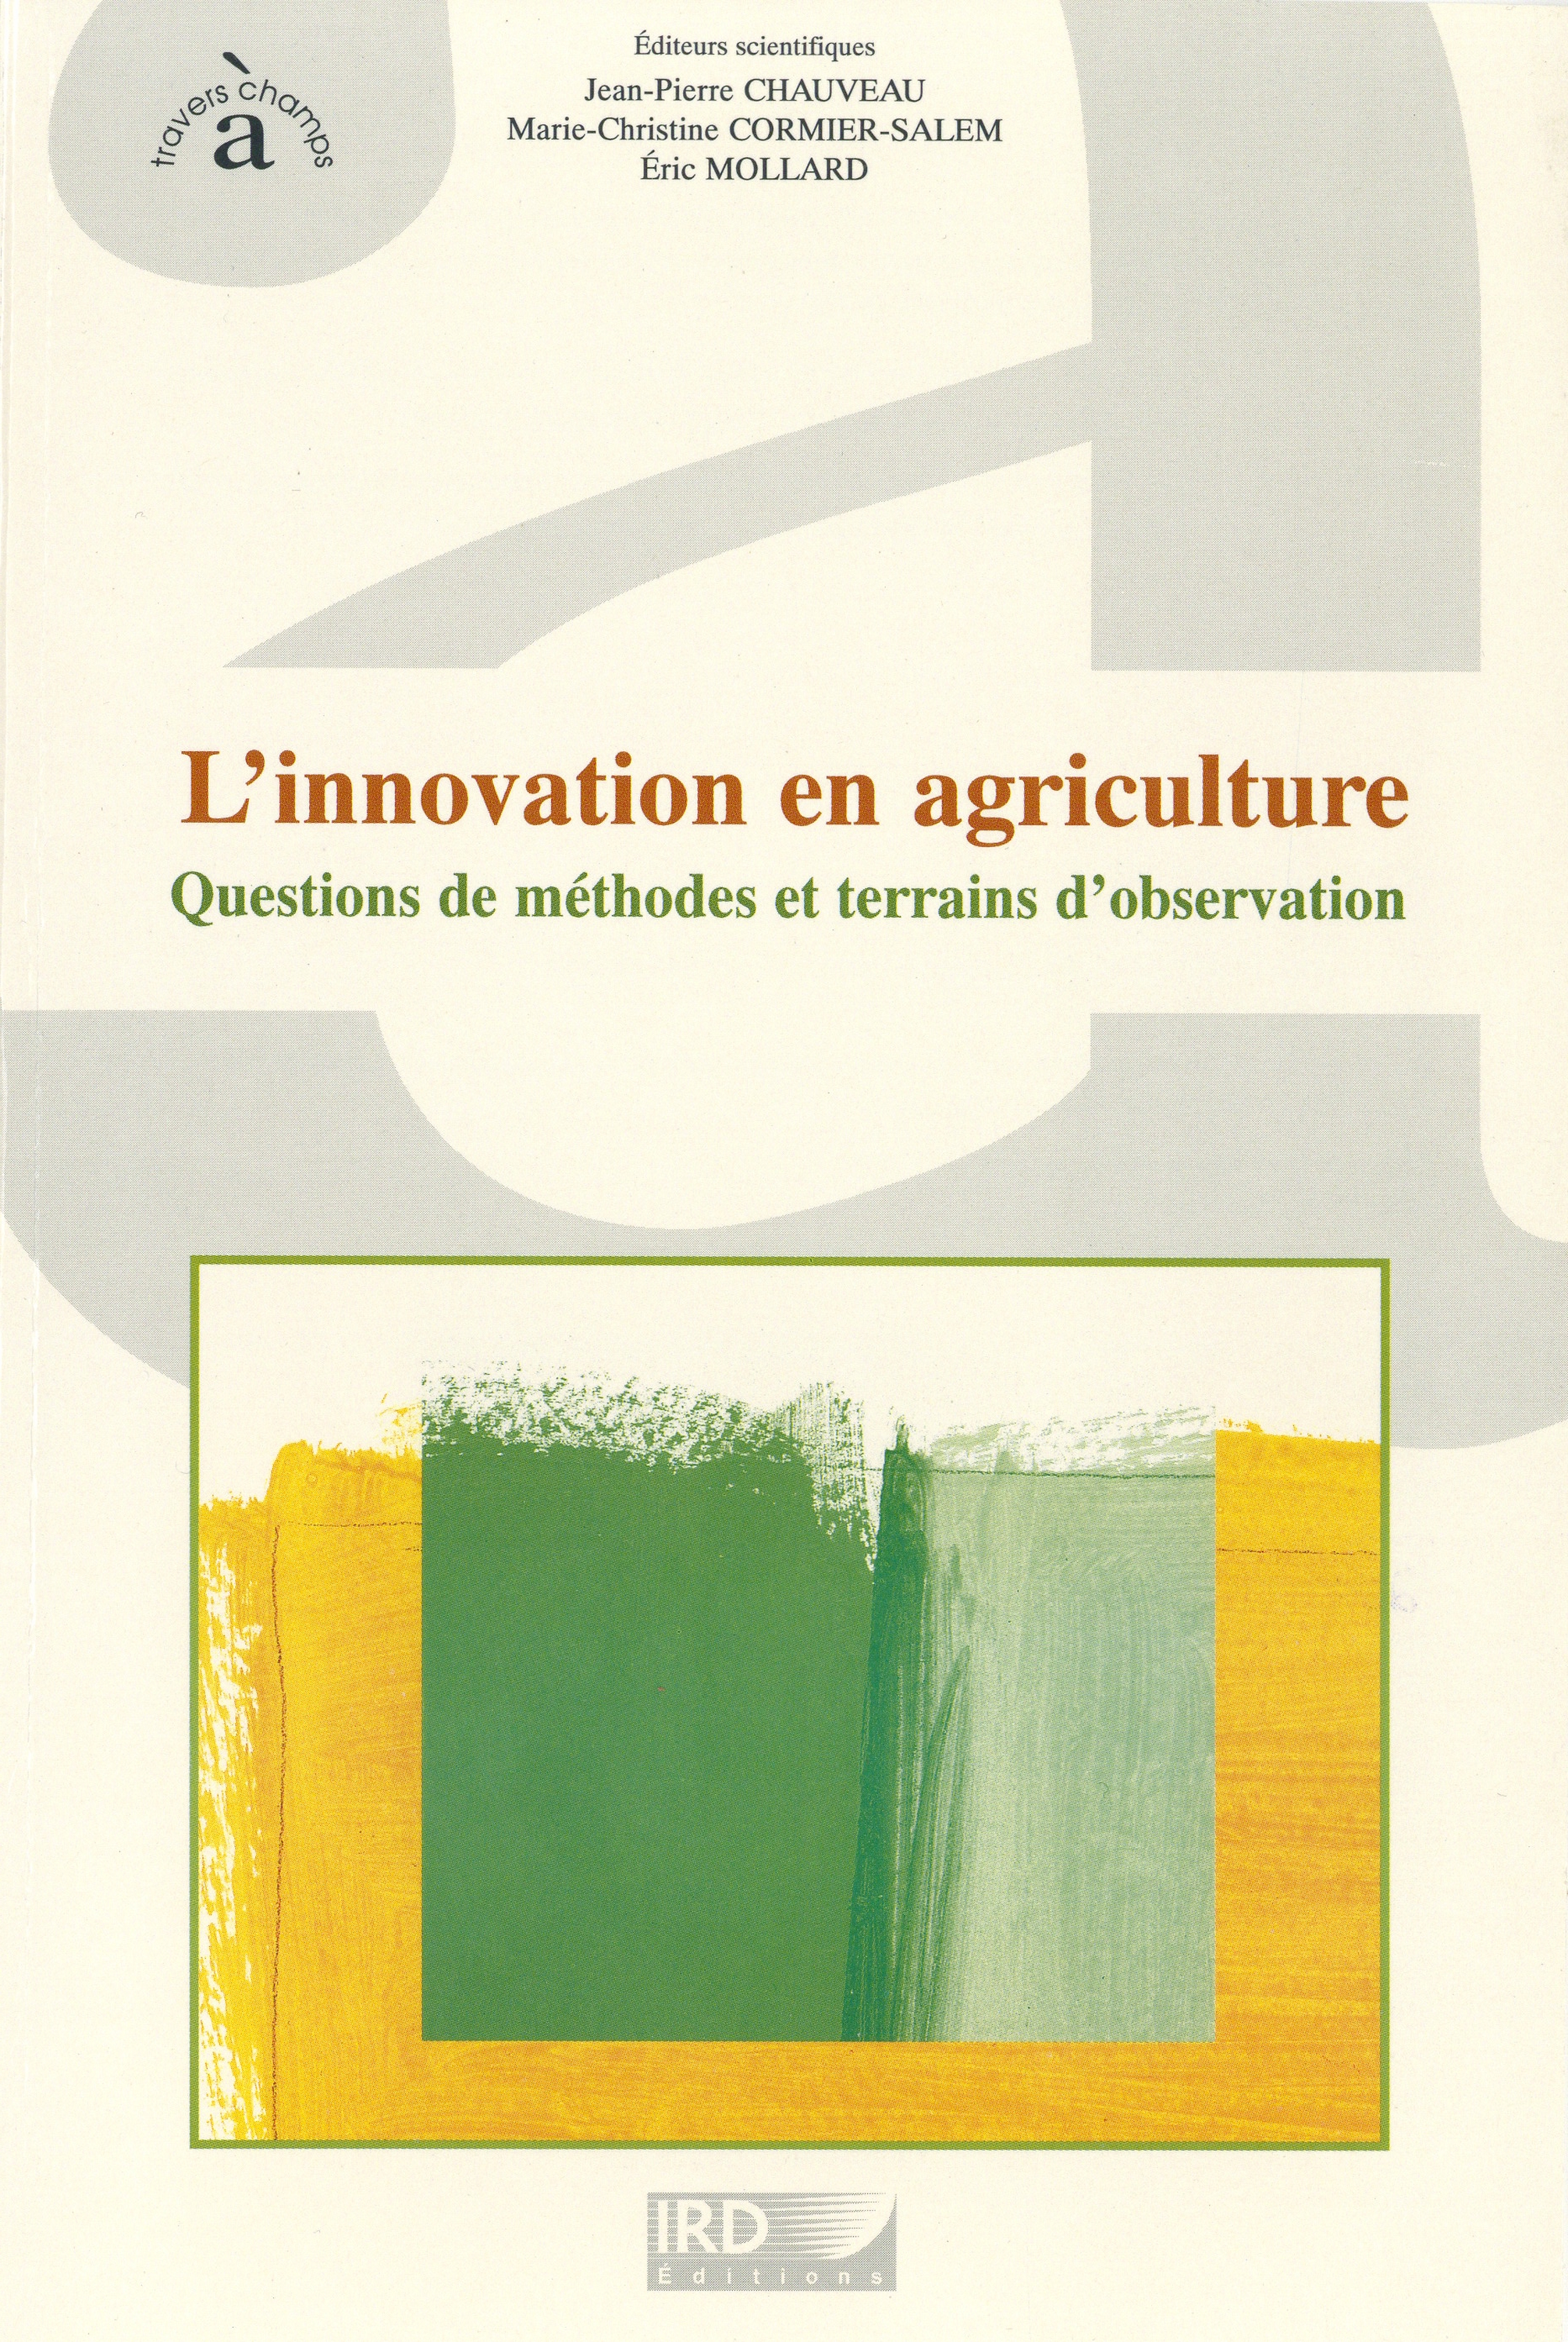 L'innovation en agriculture  - IRD Éditions